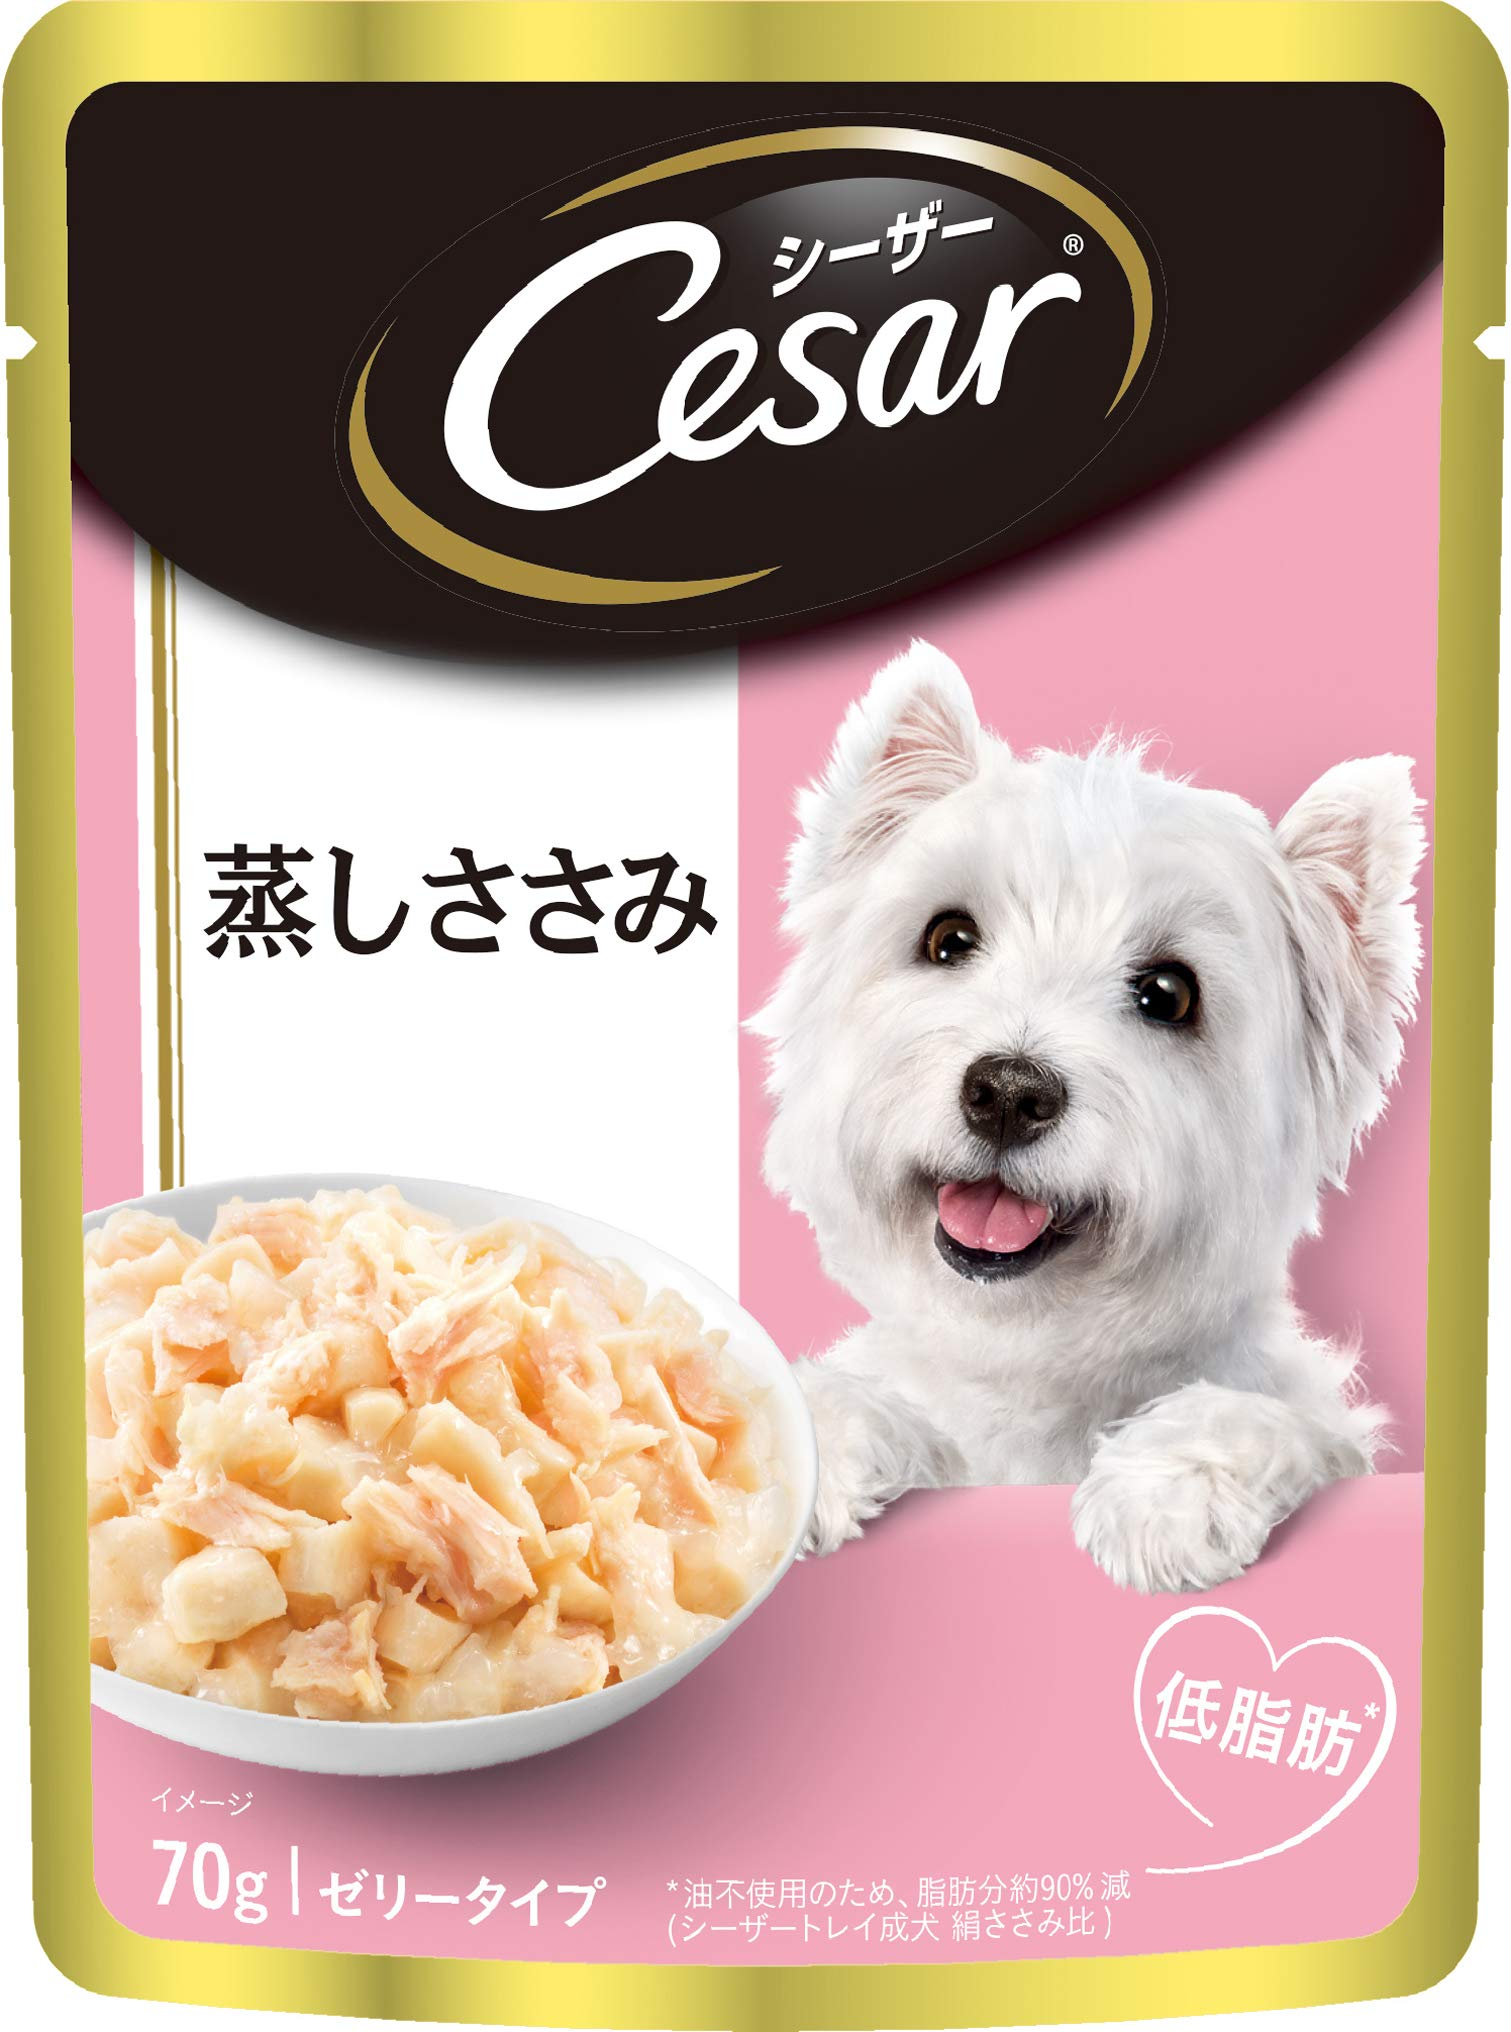 Amazon price history for Cesar Adult Wet Valentines Gift Dog Food (Gourmet Meal), Sasami, 16 Pouches (16x70g)